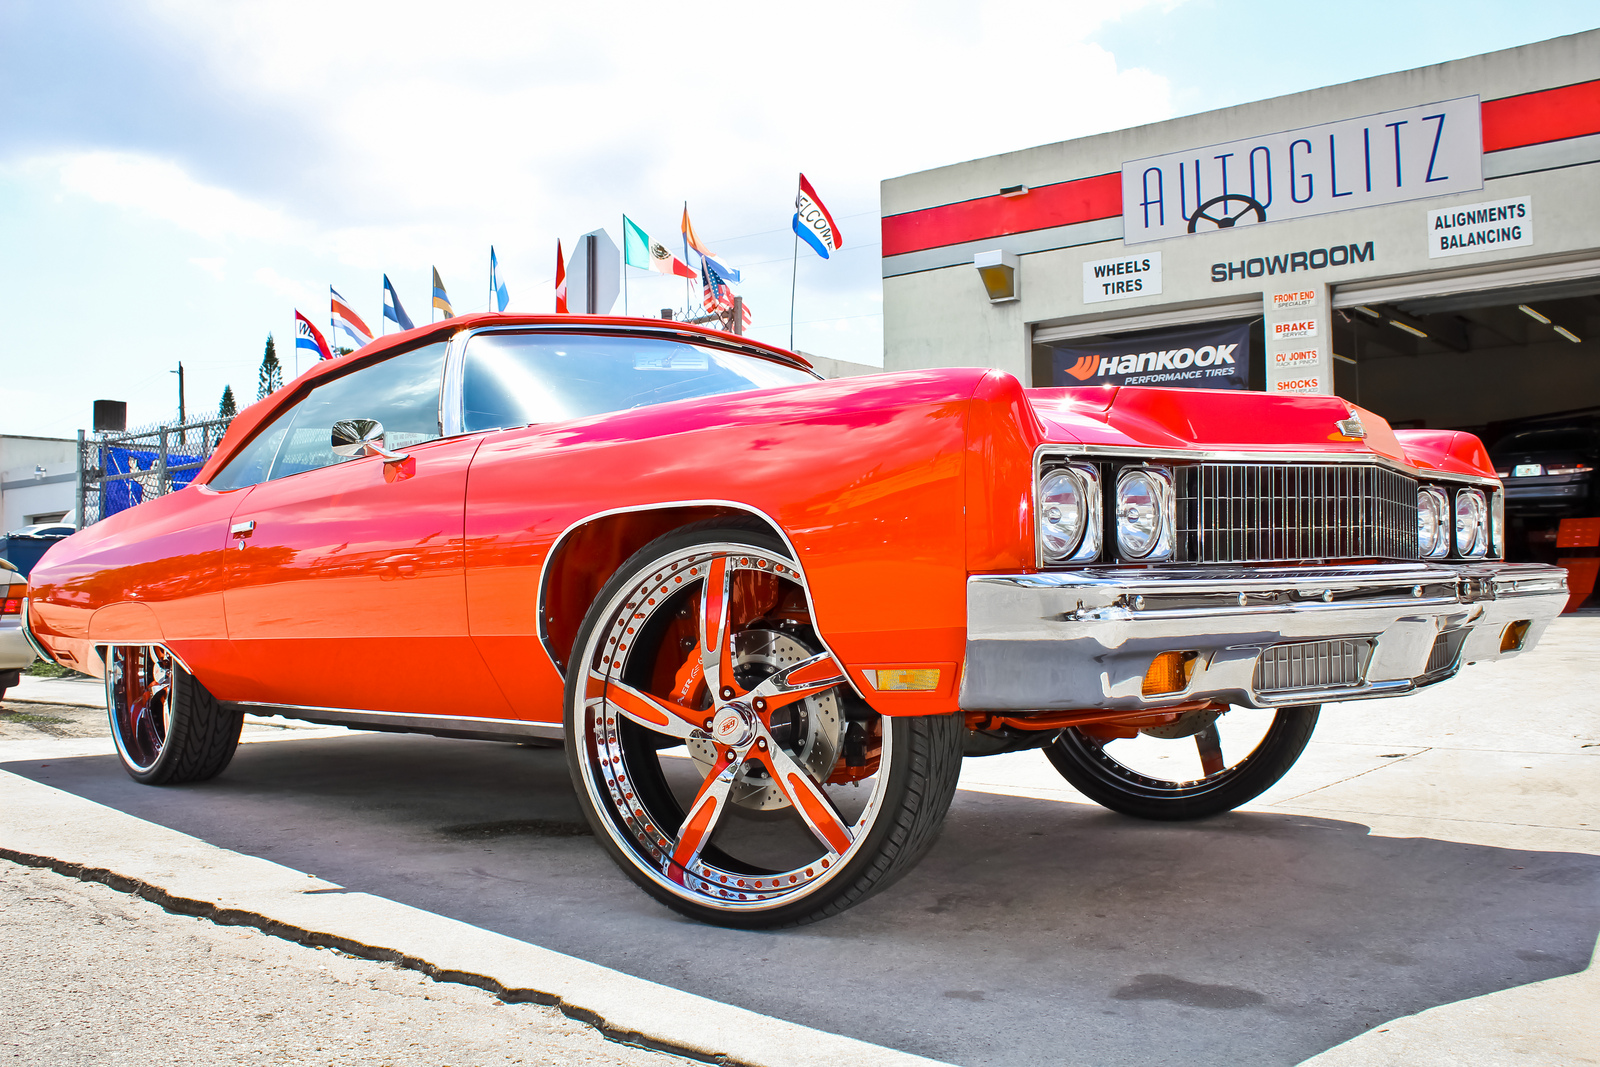 The Donk Putting Huge Wheels On A Car Autoevolution - Donk car show